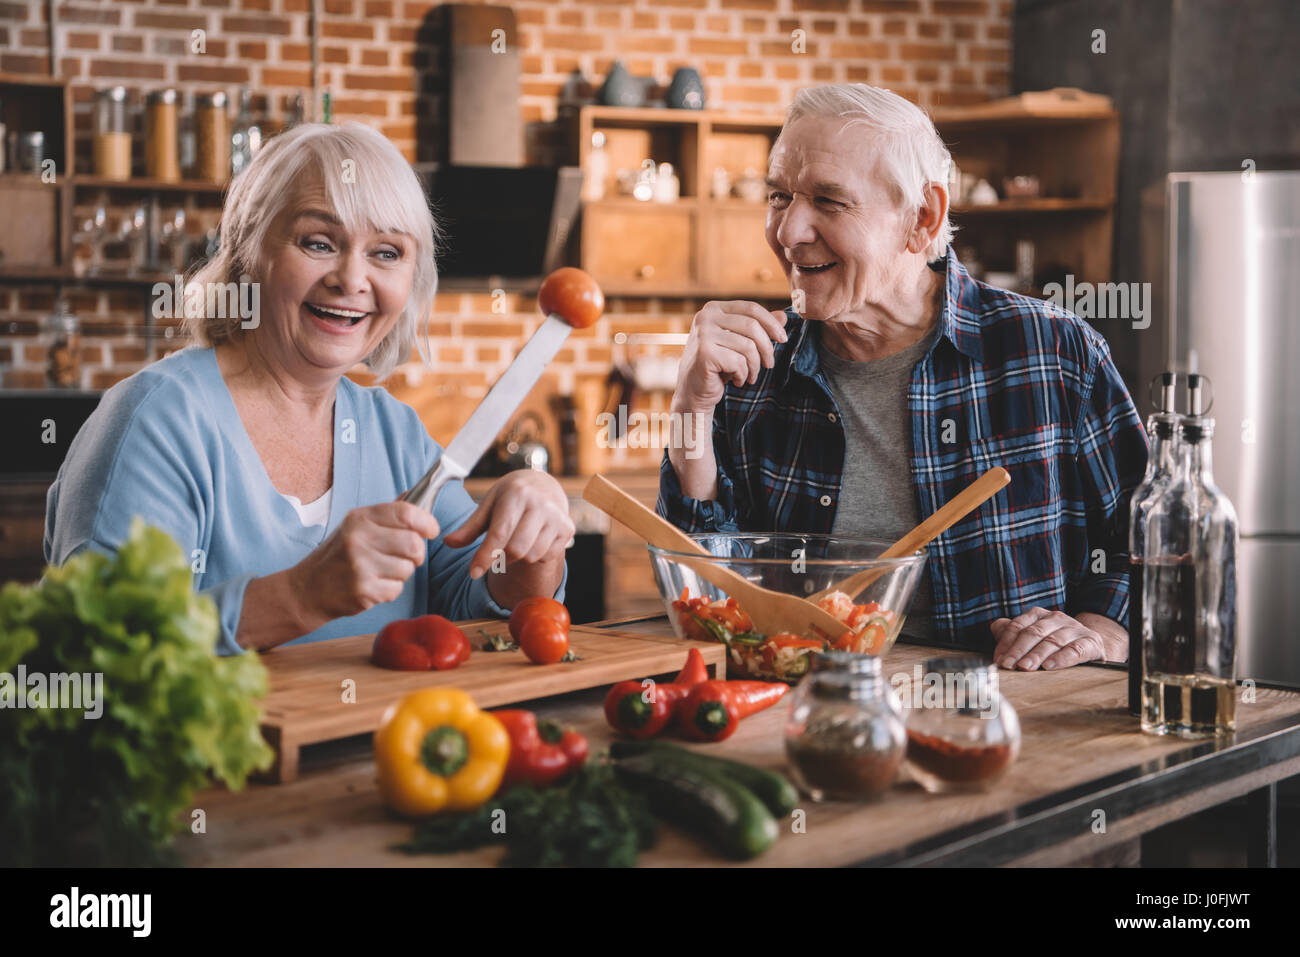 Happy senior couple cooking together and having fun at kitchen - Stock Image